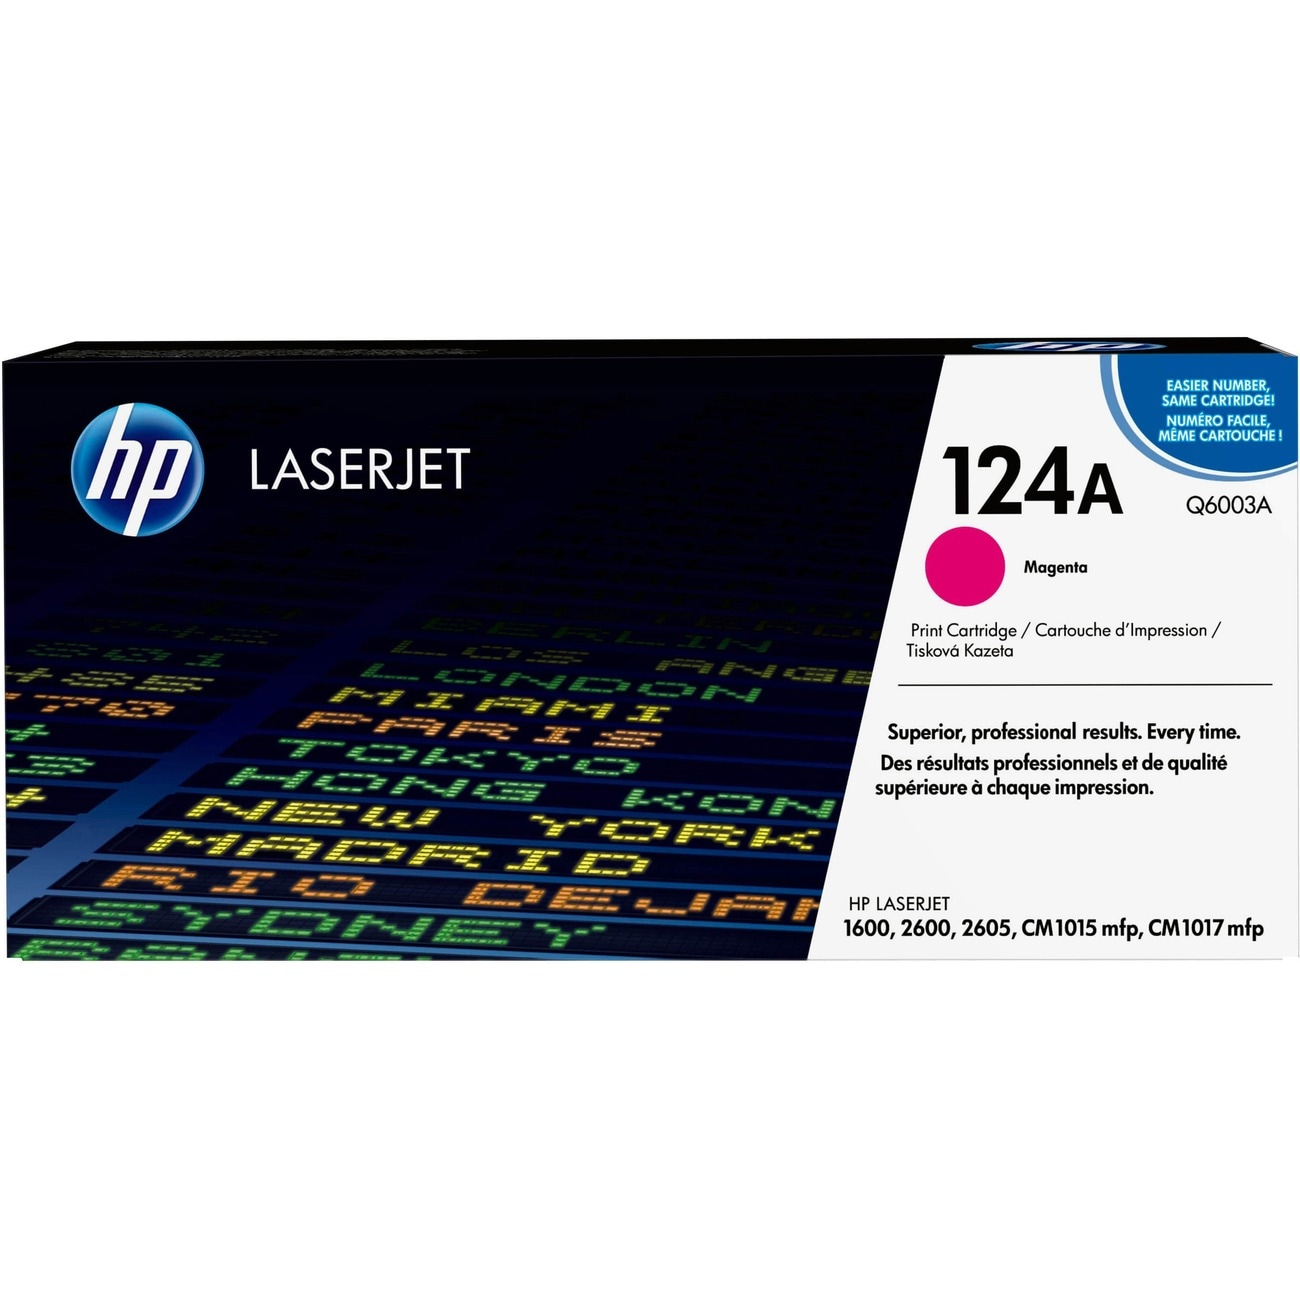 HP Toner Cartridge (Magenta)